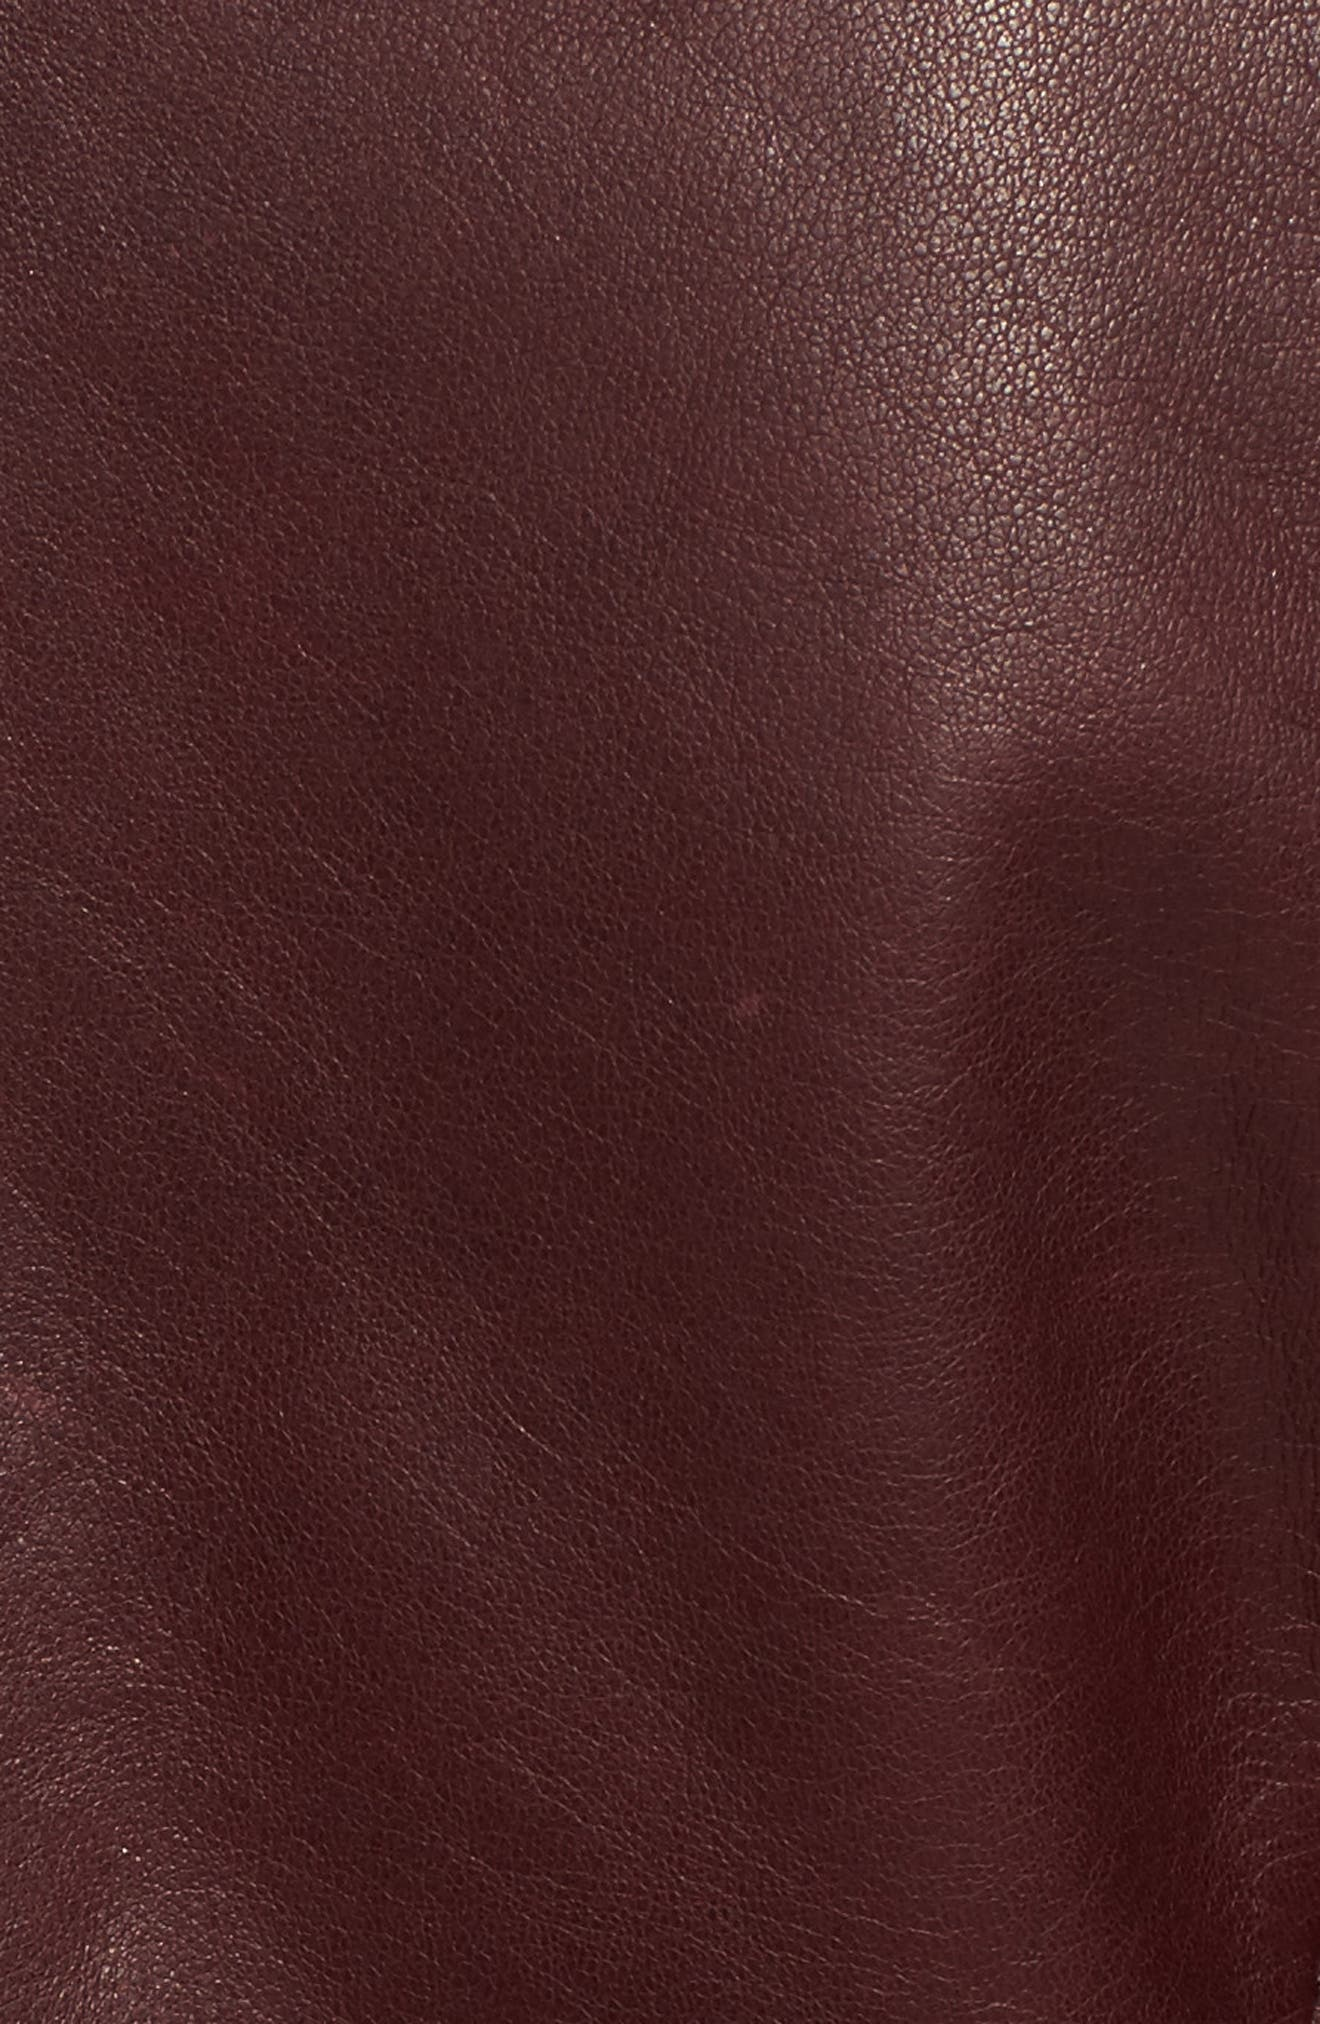 Cambridge Genuine Rabbit Fur & Leather Jacket,                             Alternate thumbnail 5, color,                             Burgundy